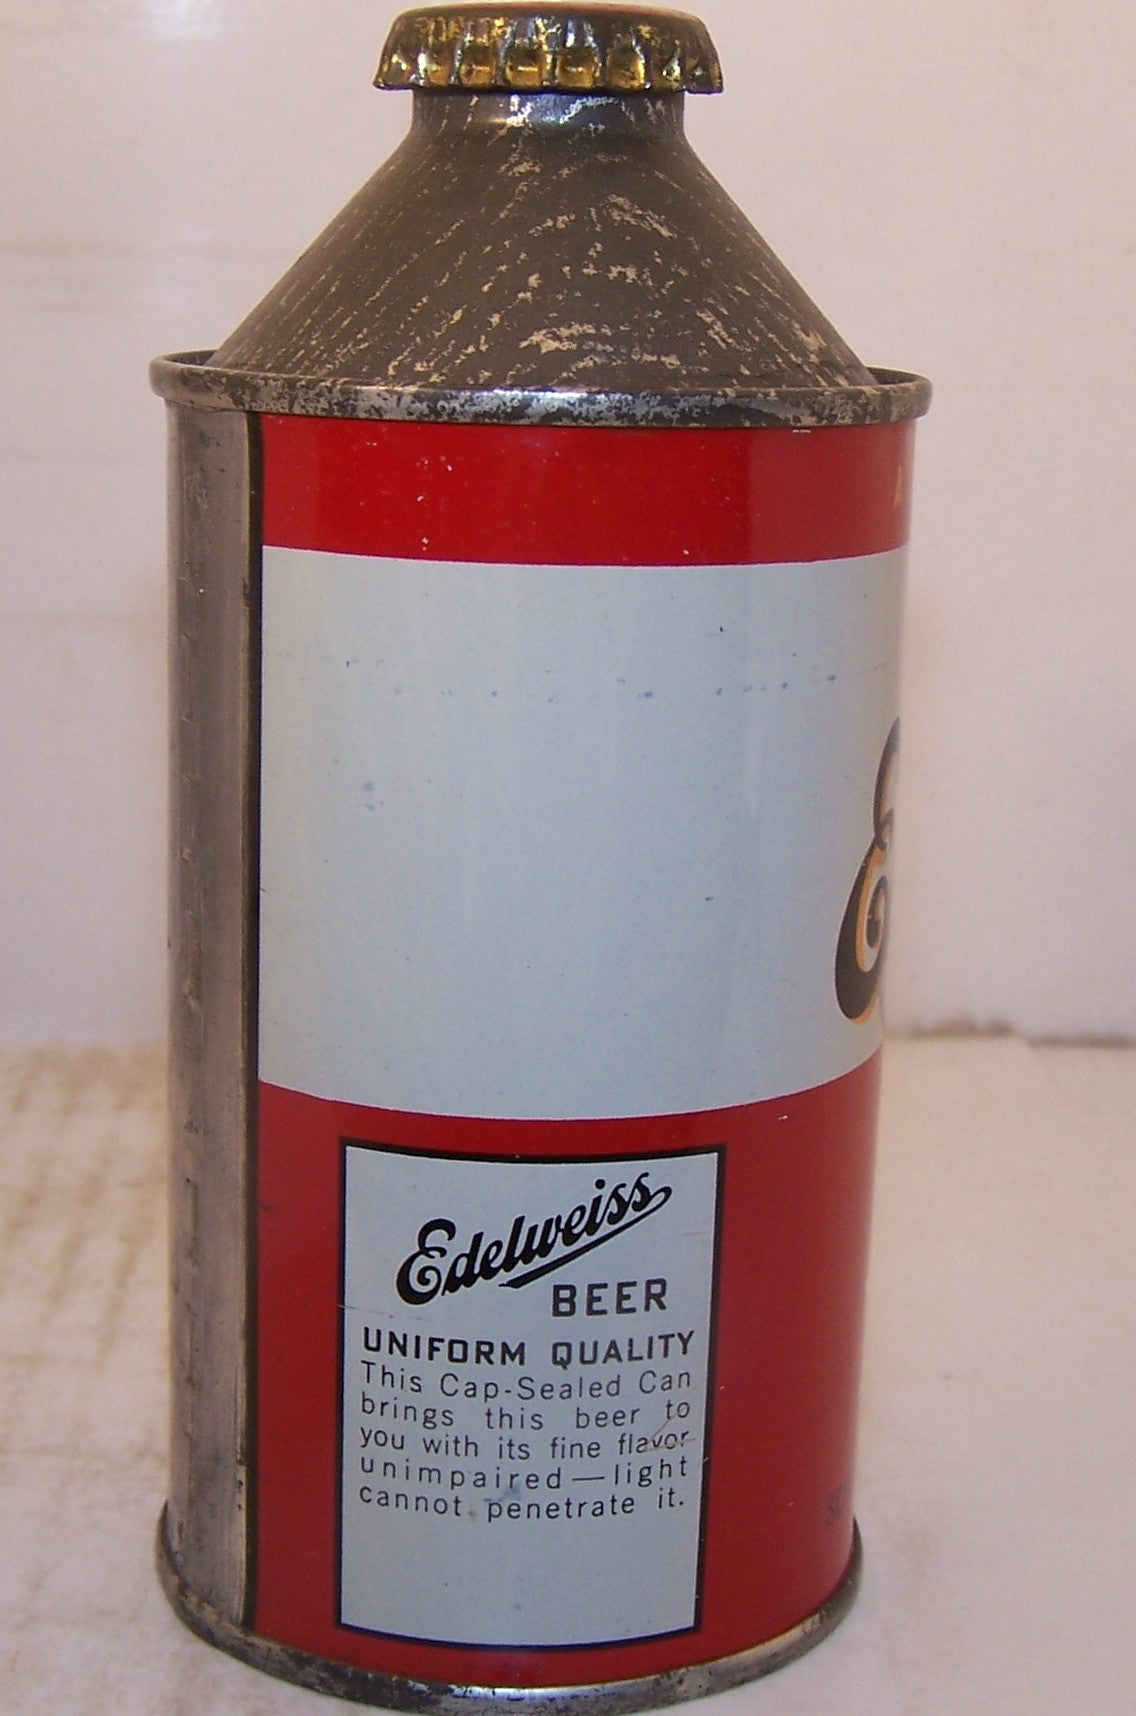 Edelweiss Secret Brew Light Beer, USBC 160-28, Grade 1 Sold 11/28/14